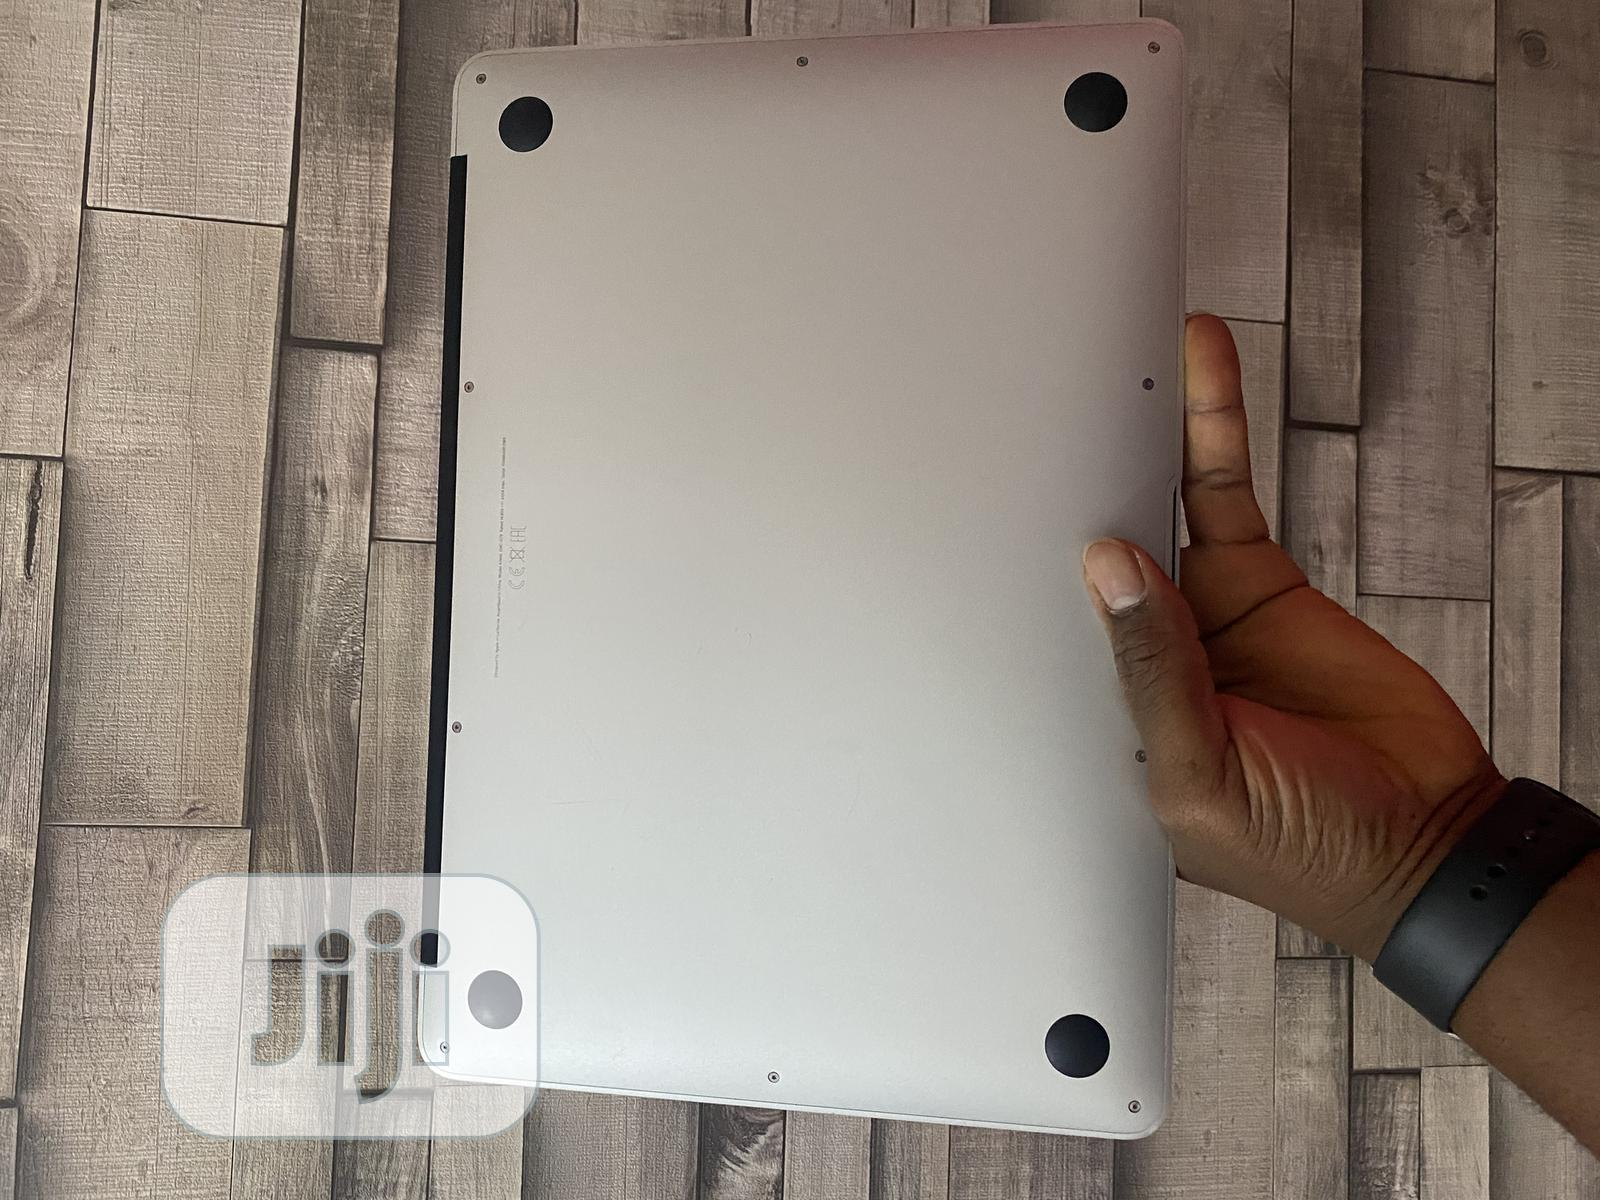 Laptop Apple MacBook Air 8GB Intel Core I5 SSD 128GB   Laptops & Computers for sale in Wuse 2, Abuja (FCT) State, Nigeria